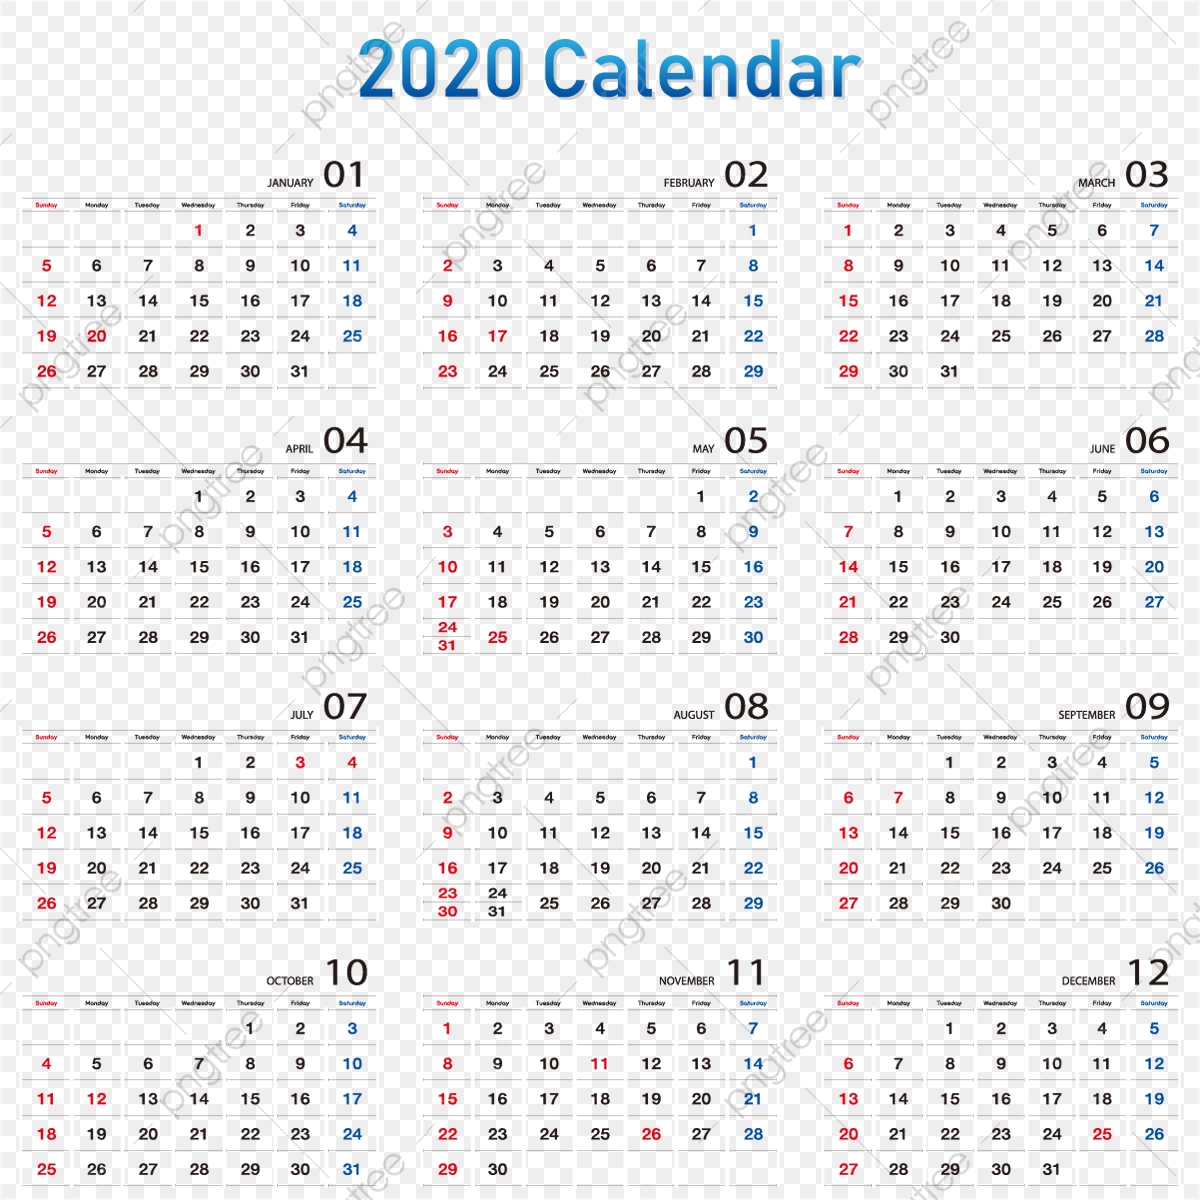 Calendar 2020 2020 Calendar, Date, Calendar, Week Png And